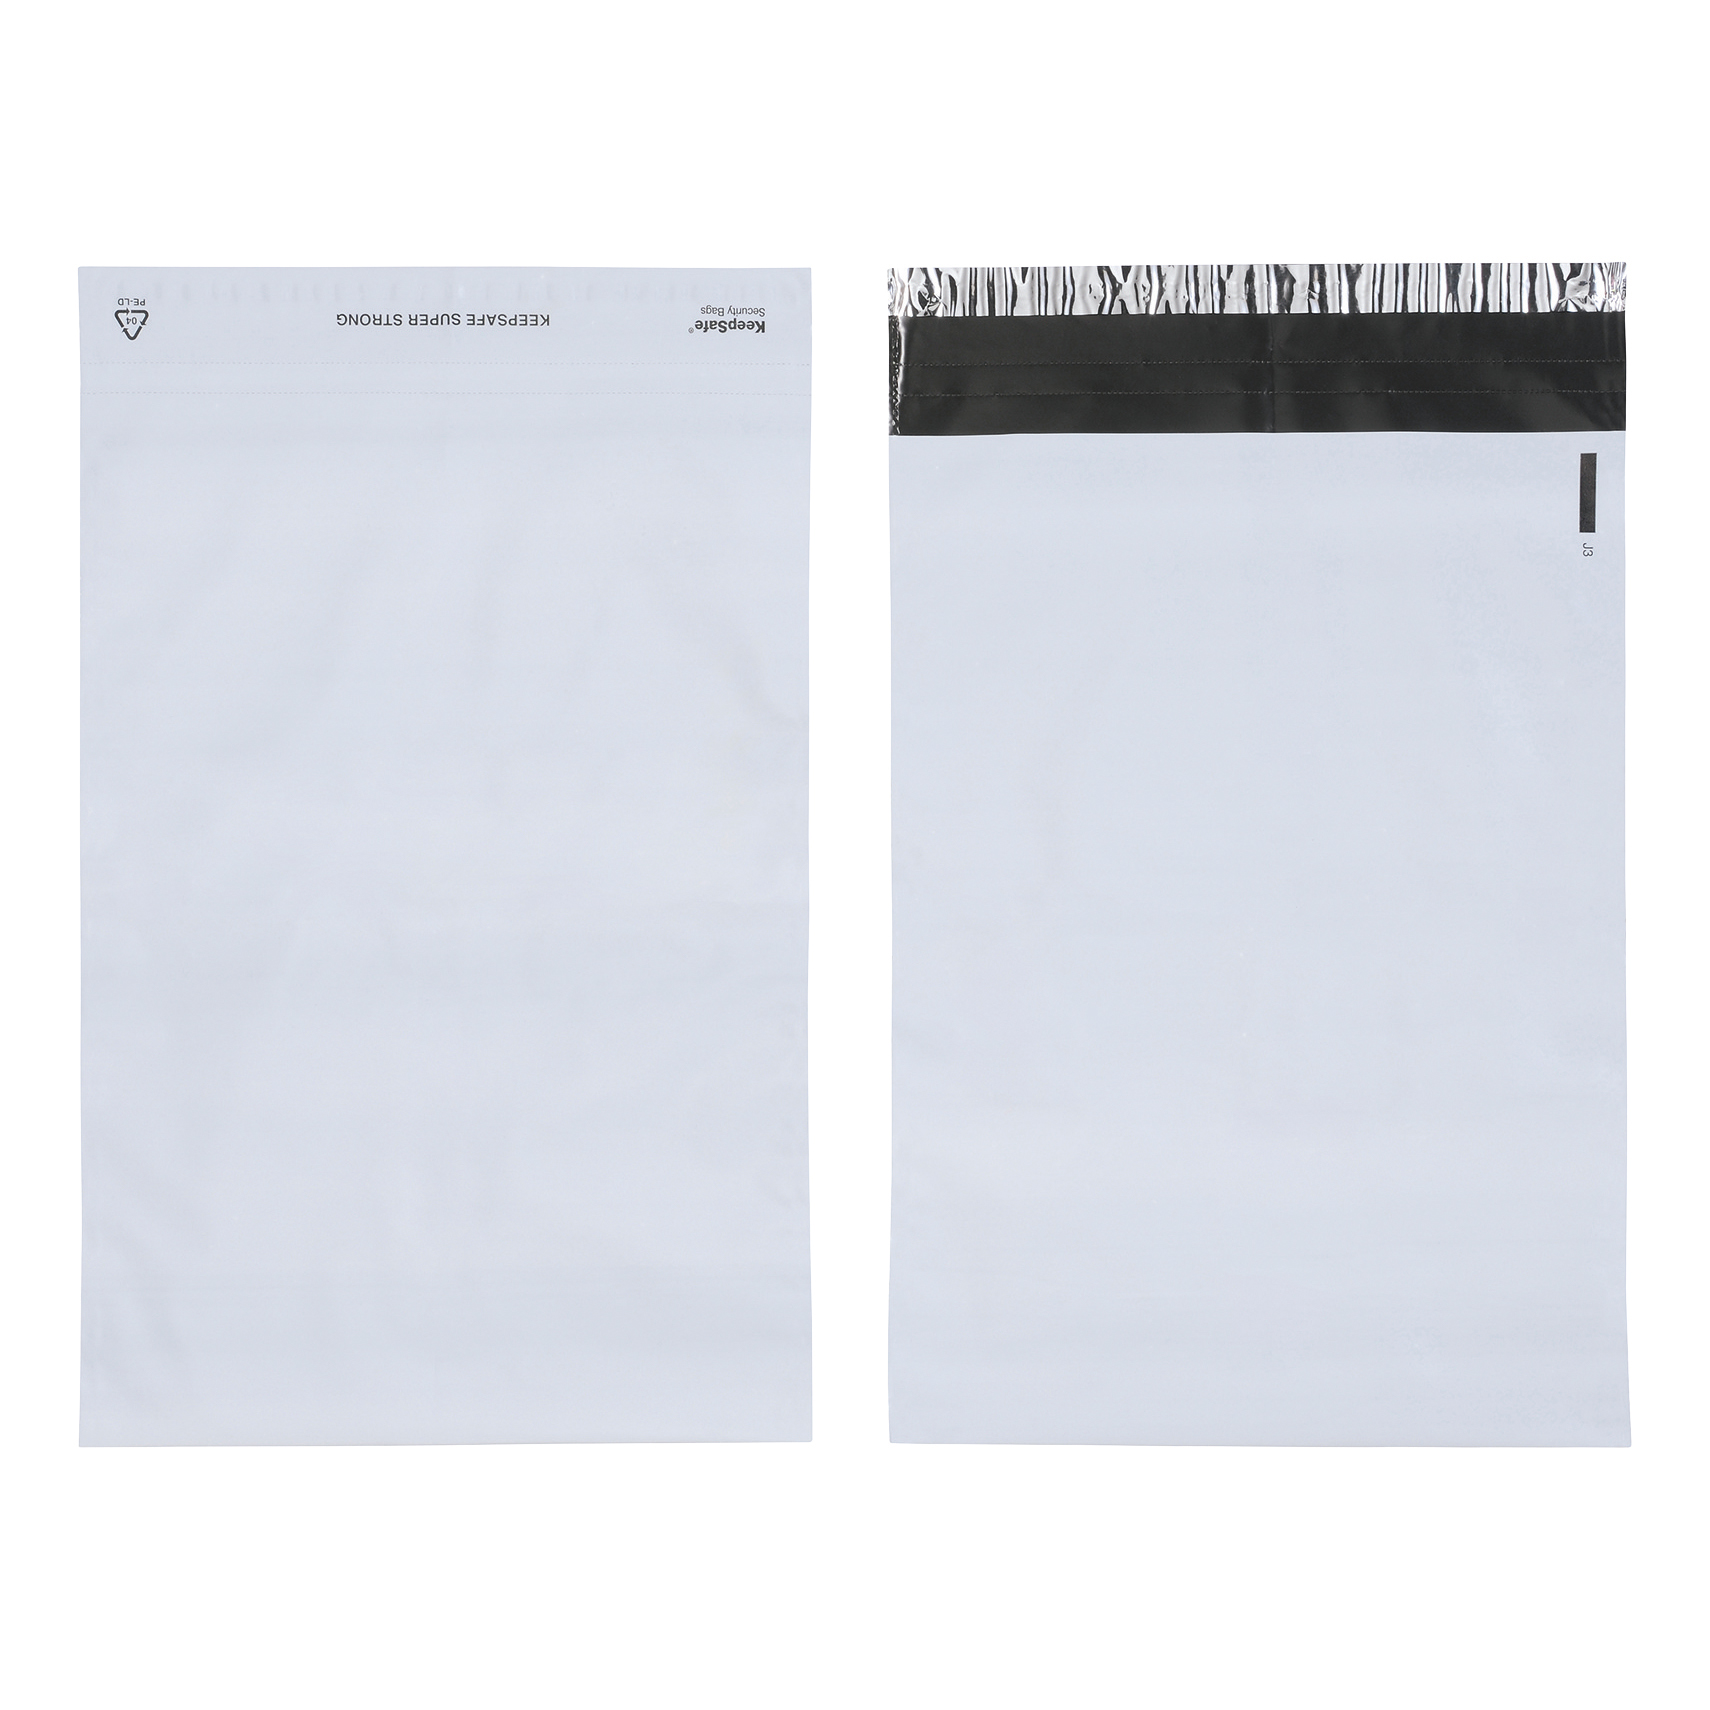 Keepsafe SuperStrong Envelope Polythene Opaque C3 W325xH430mm Peel & Seal Ref KSV-SS3 Pack 100